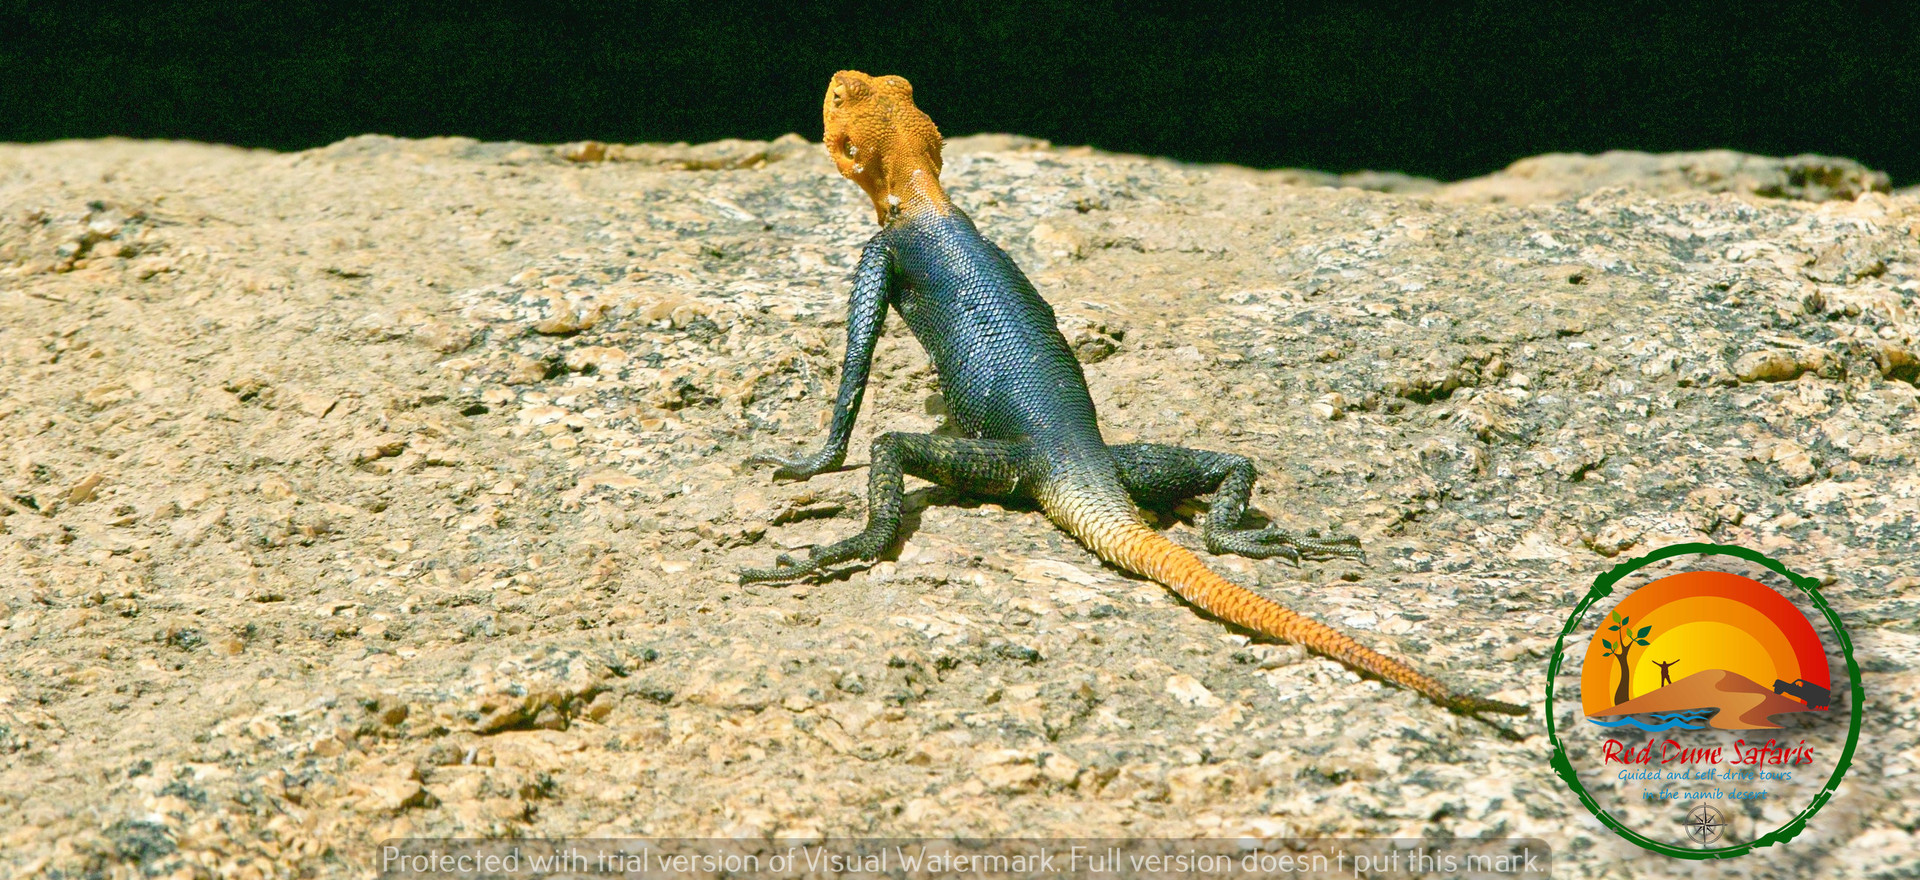 Rock Agama Lizard at Spitzkoppe